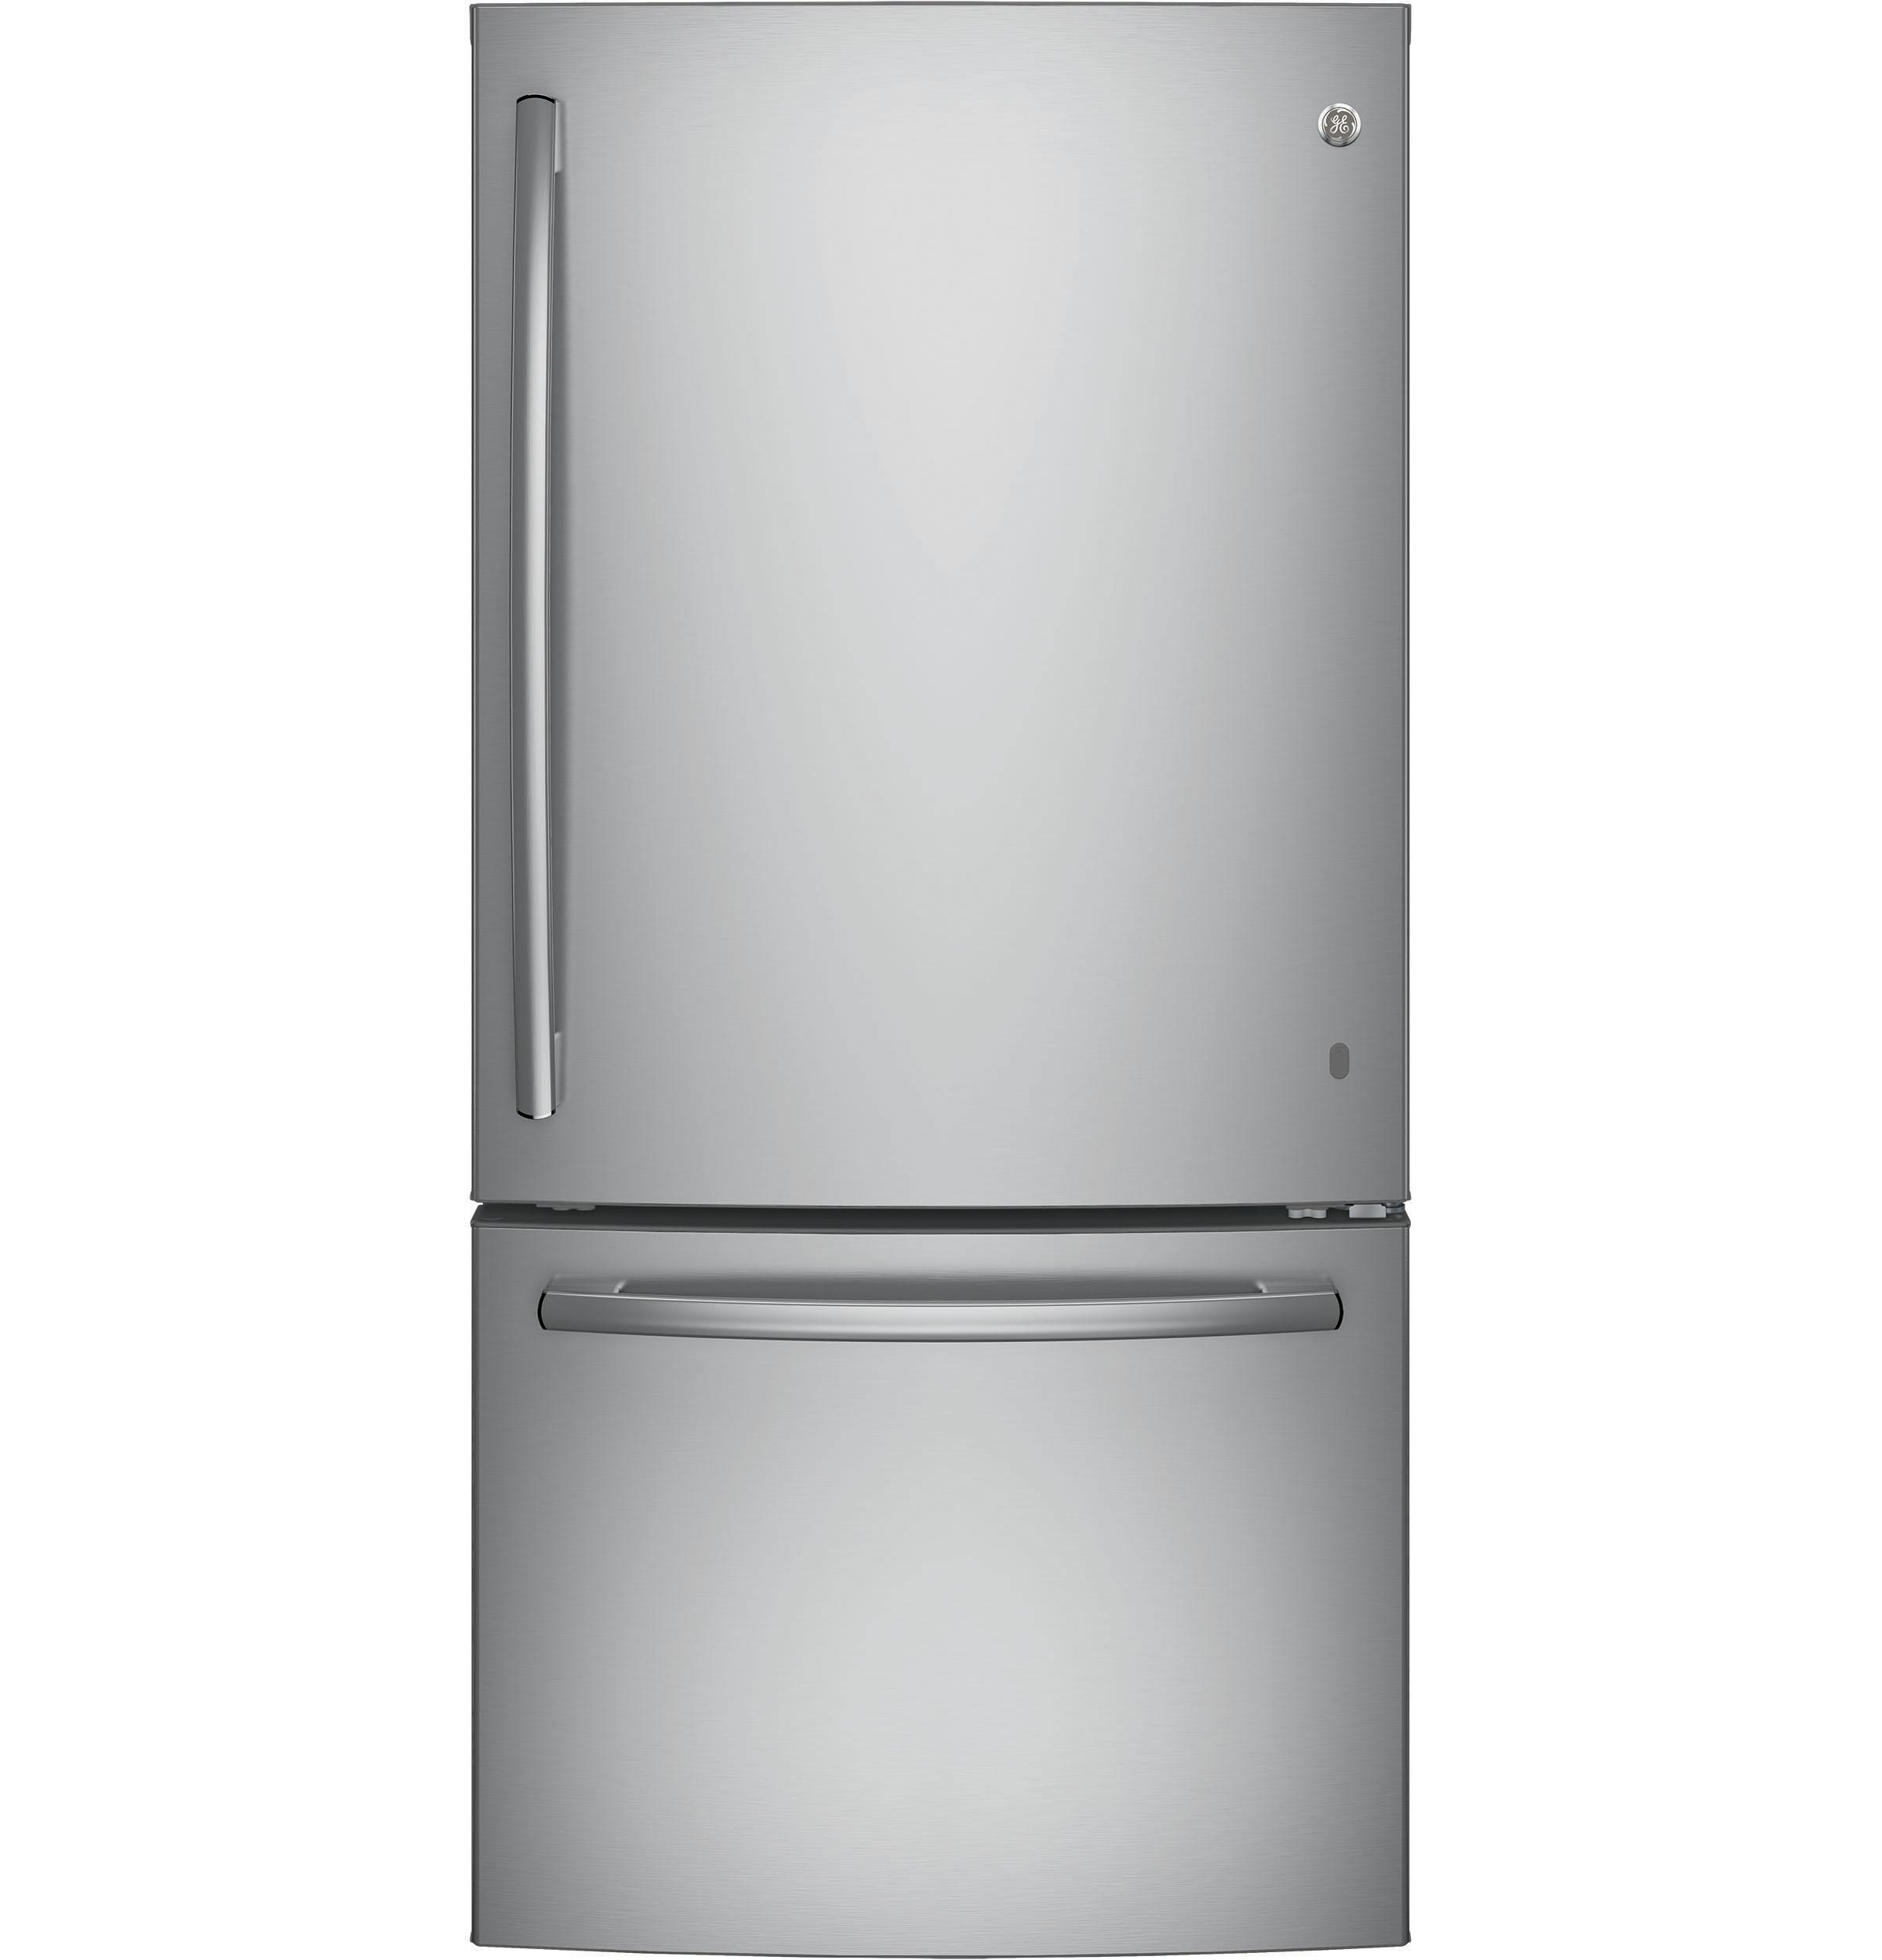 GE(R) ENERGY STAR(R) 24.9 Cu. Ft. Bottom-Freezer Drawer Refrigerator